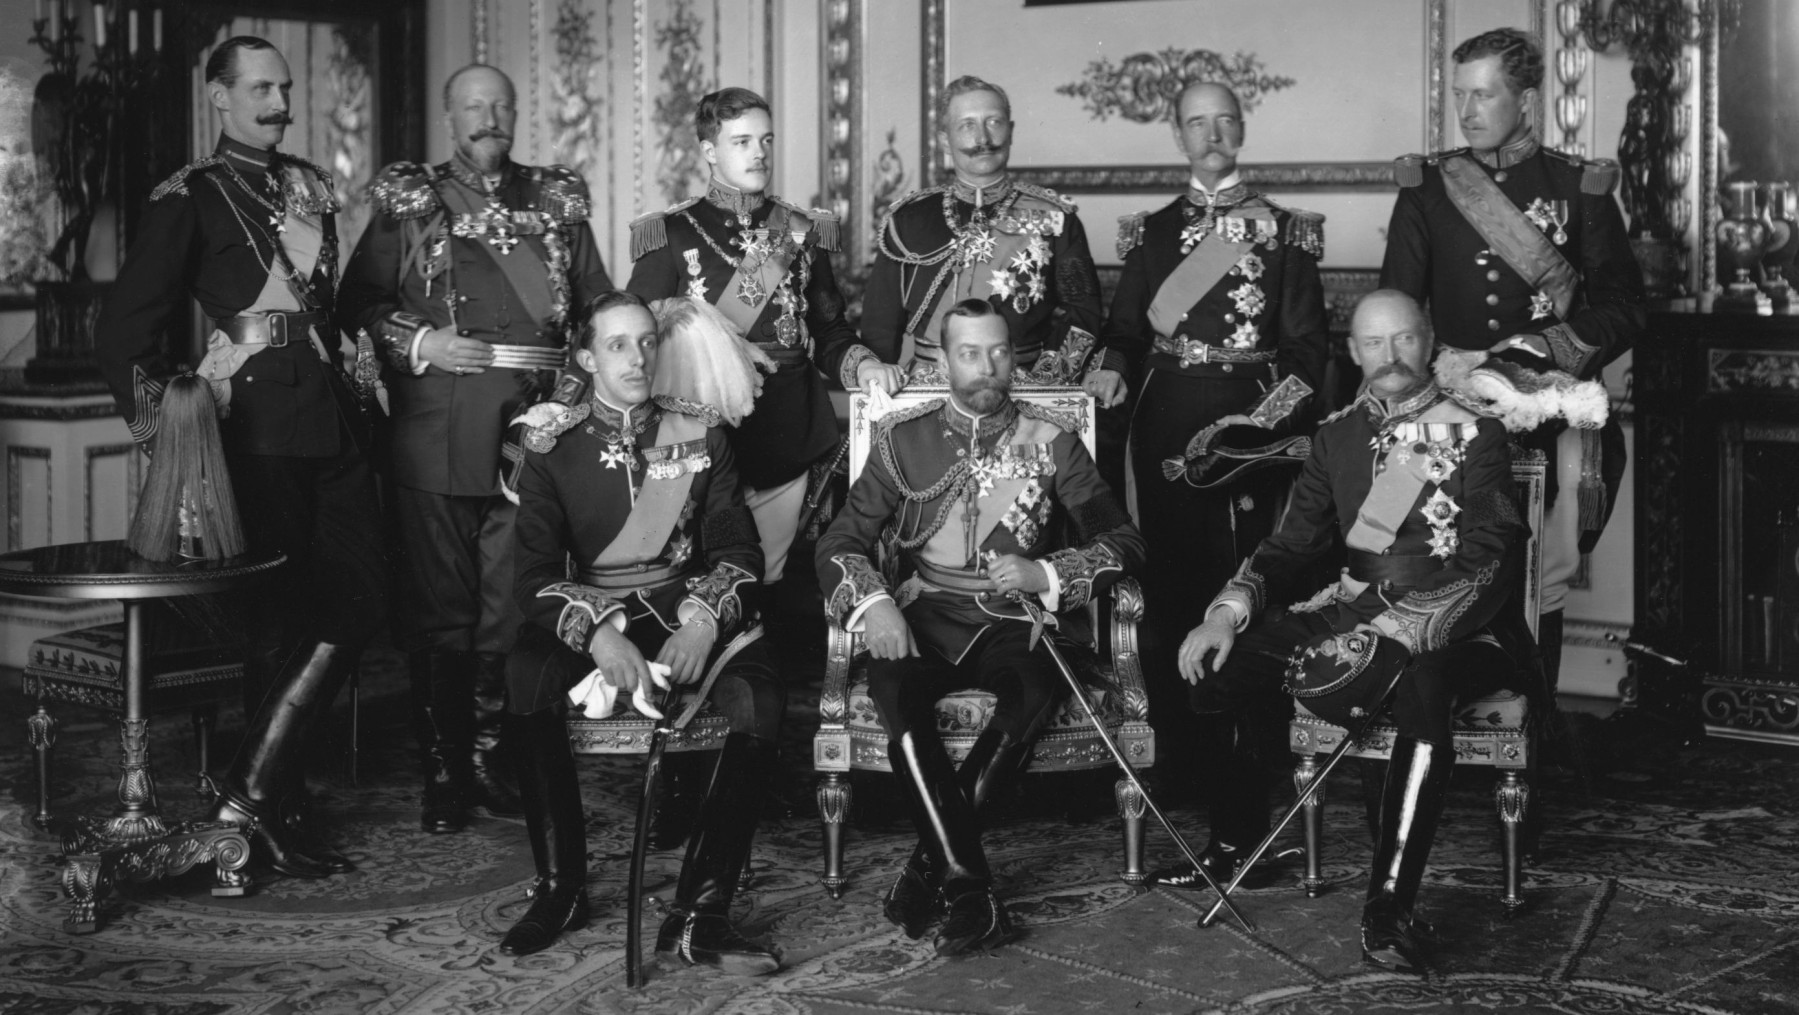 May 1910:  Nine Kings assembled at Buckingham Palace for the funeral of Edward VII, the Father of George V (centre). From left to right, back row: Haakon VII of Norway, Ferdinand I of Bulgaria, Manuel II of Portugal, Wilhelm II of Germany, George I of Greece and Albert I Of Belgium. Front row: Alphonso XIII of Spain, George V and Frederick VIII of Denmark.  (Photo by W. & D. Downey/Getty Images)